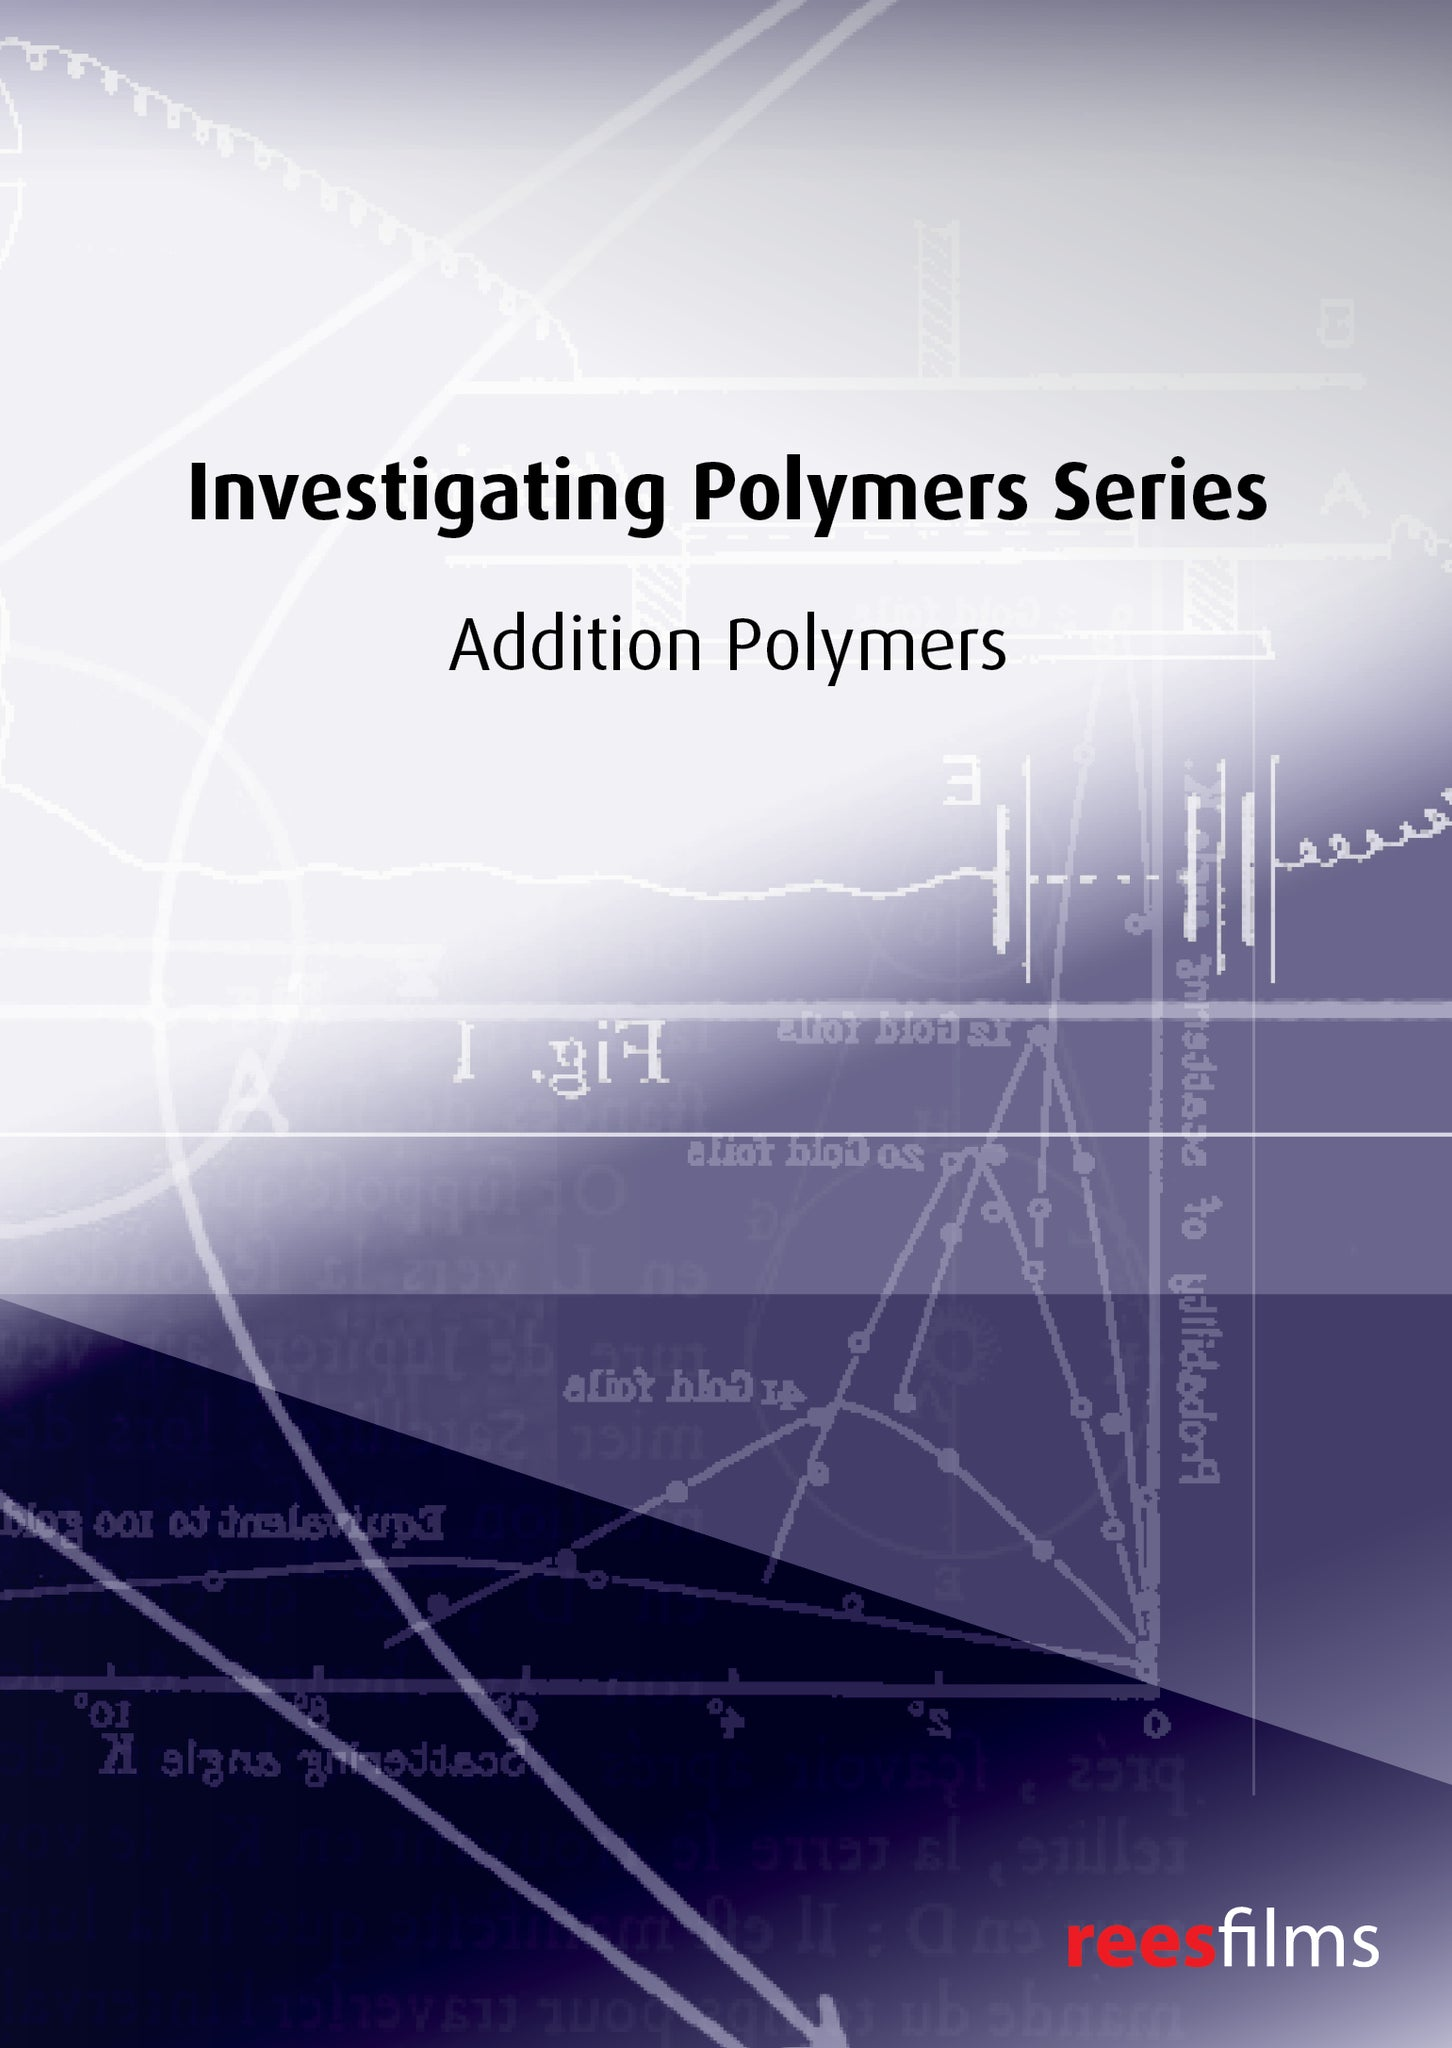 Investigating Polymers: Addition Polymers